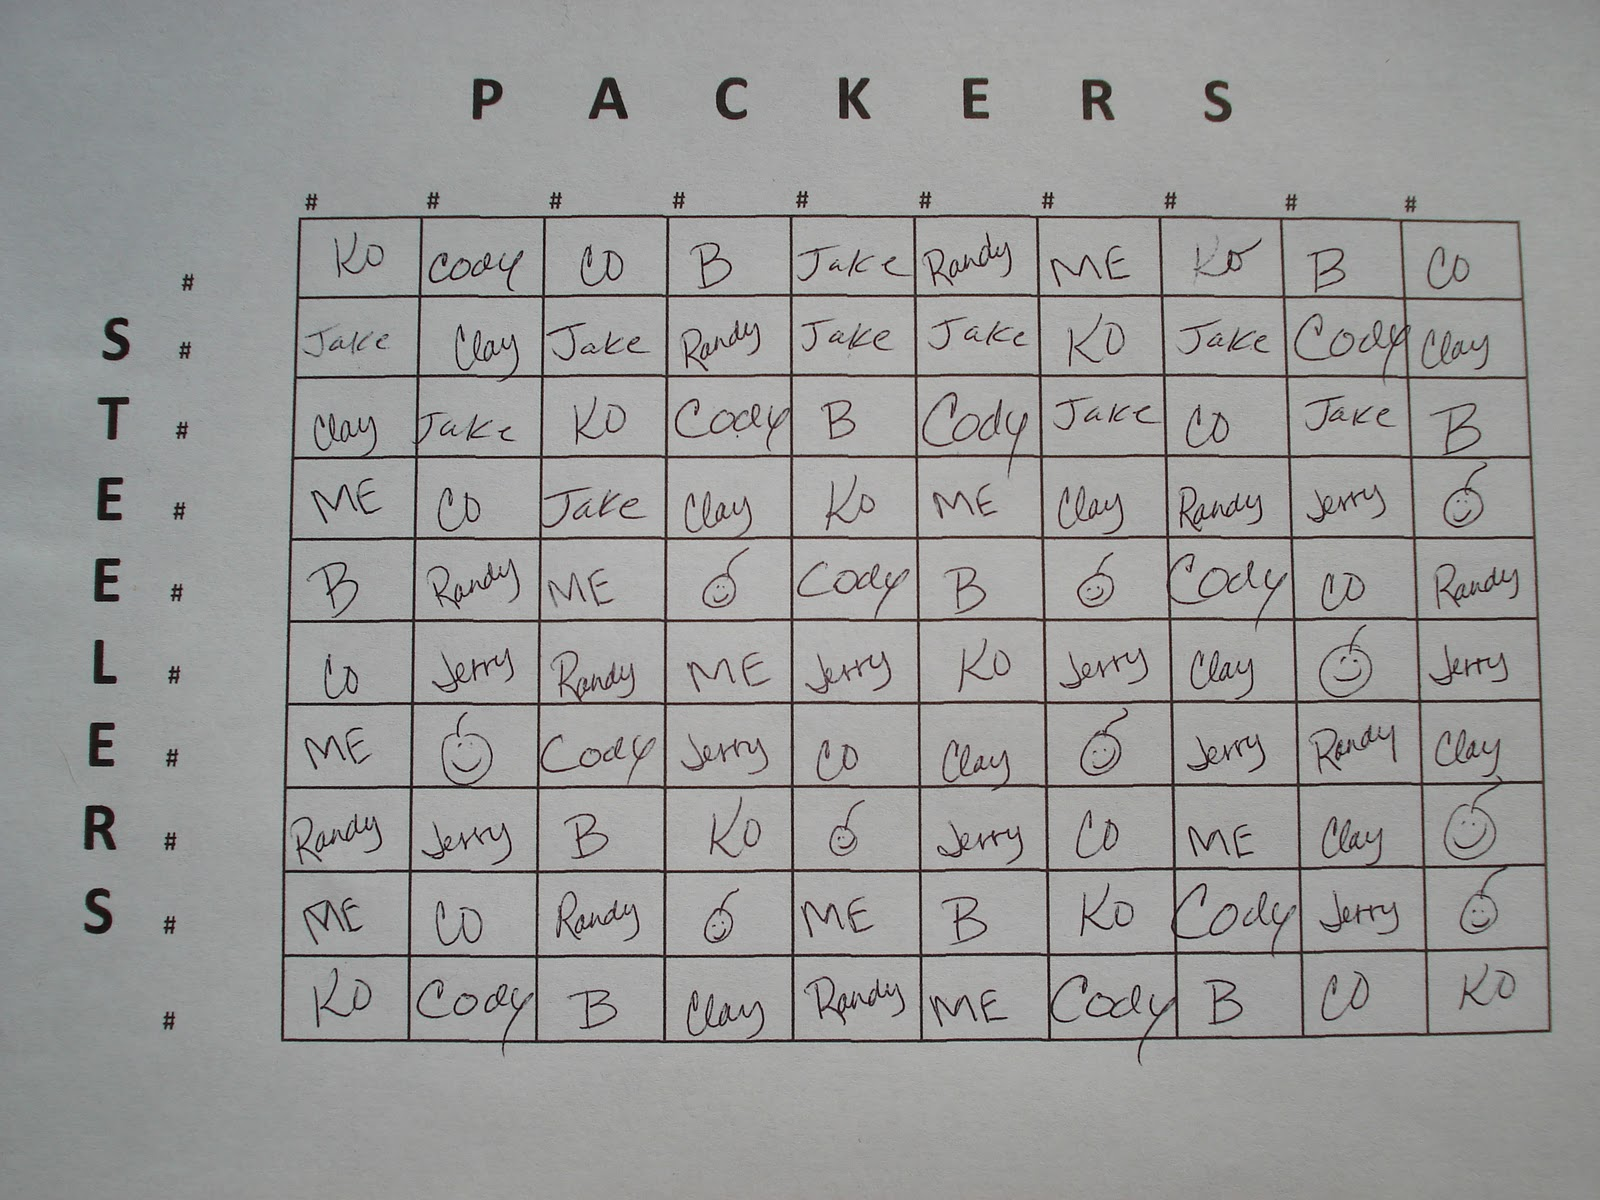 Super Bowl Pools Ideas super bowl squares how to win during super bowl xlix Now You Are Ready To Add The Numbers From A Deck Of Cards Take Out One Joker For 0 Plus Ace Through 9 Shuffle Your Mini Deck And Flip The Cards Over